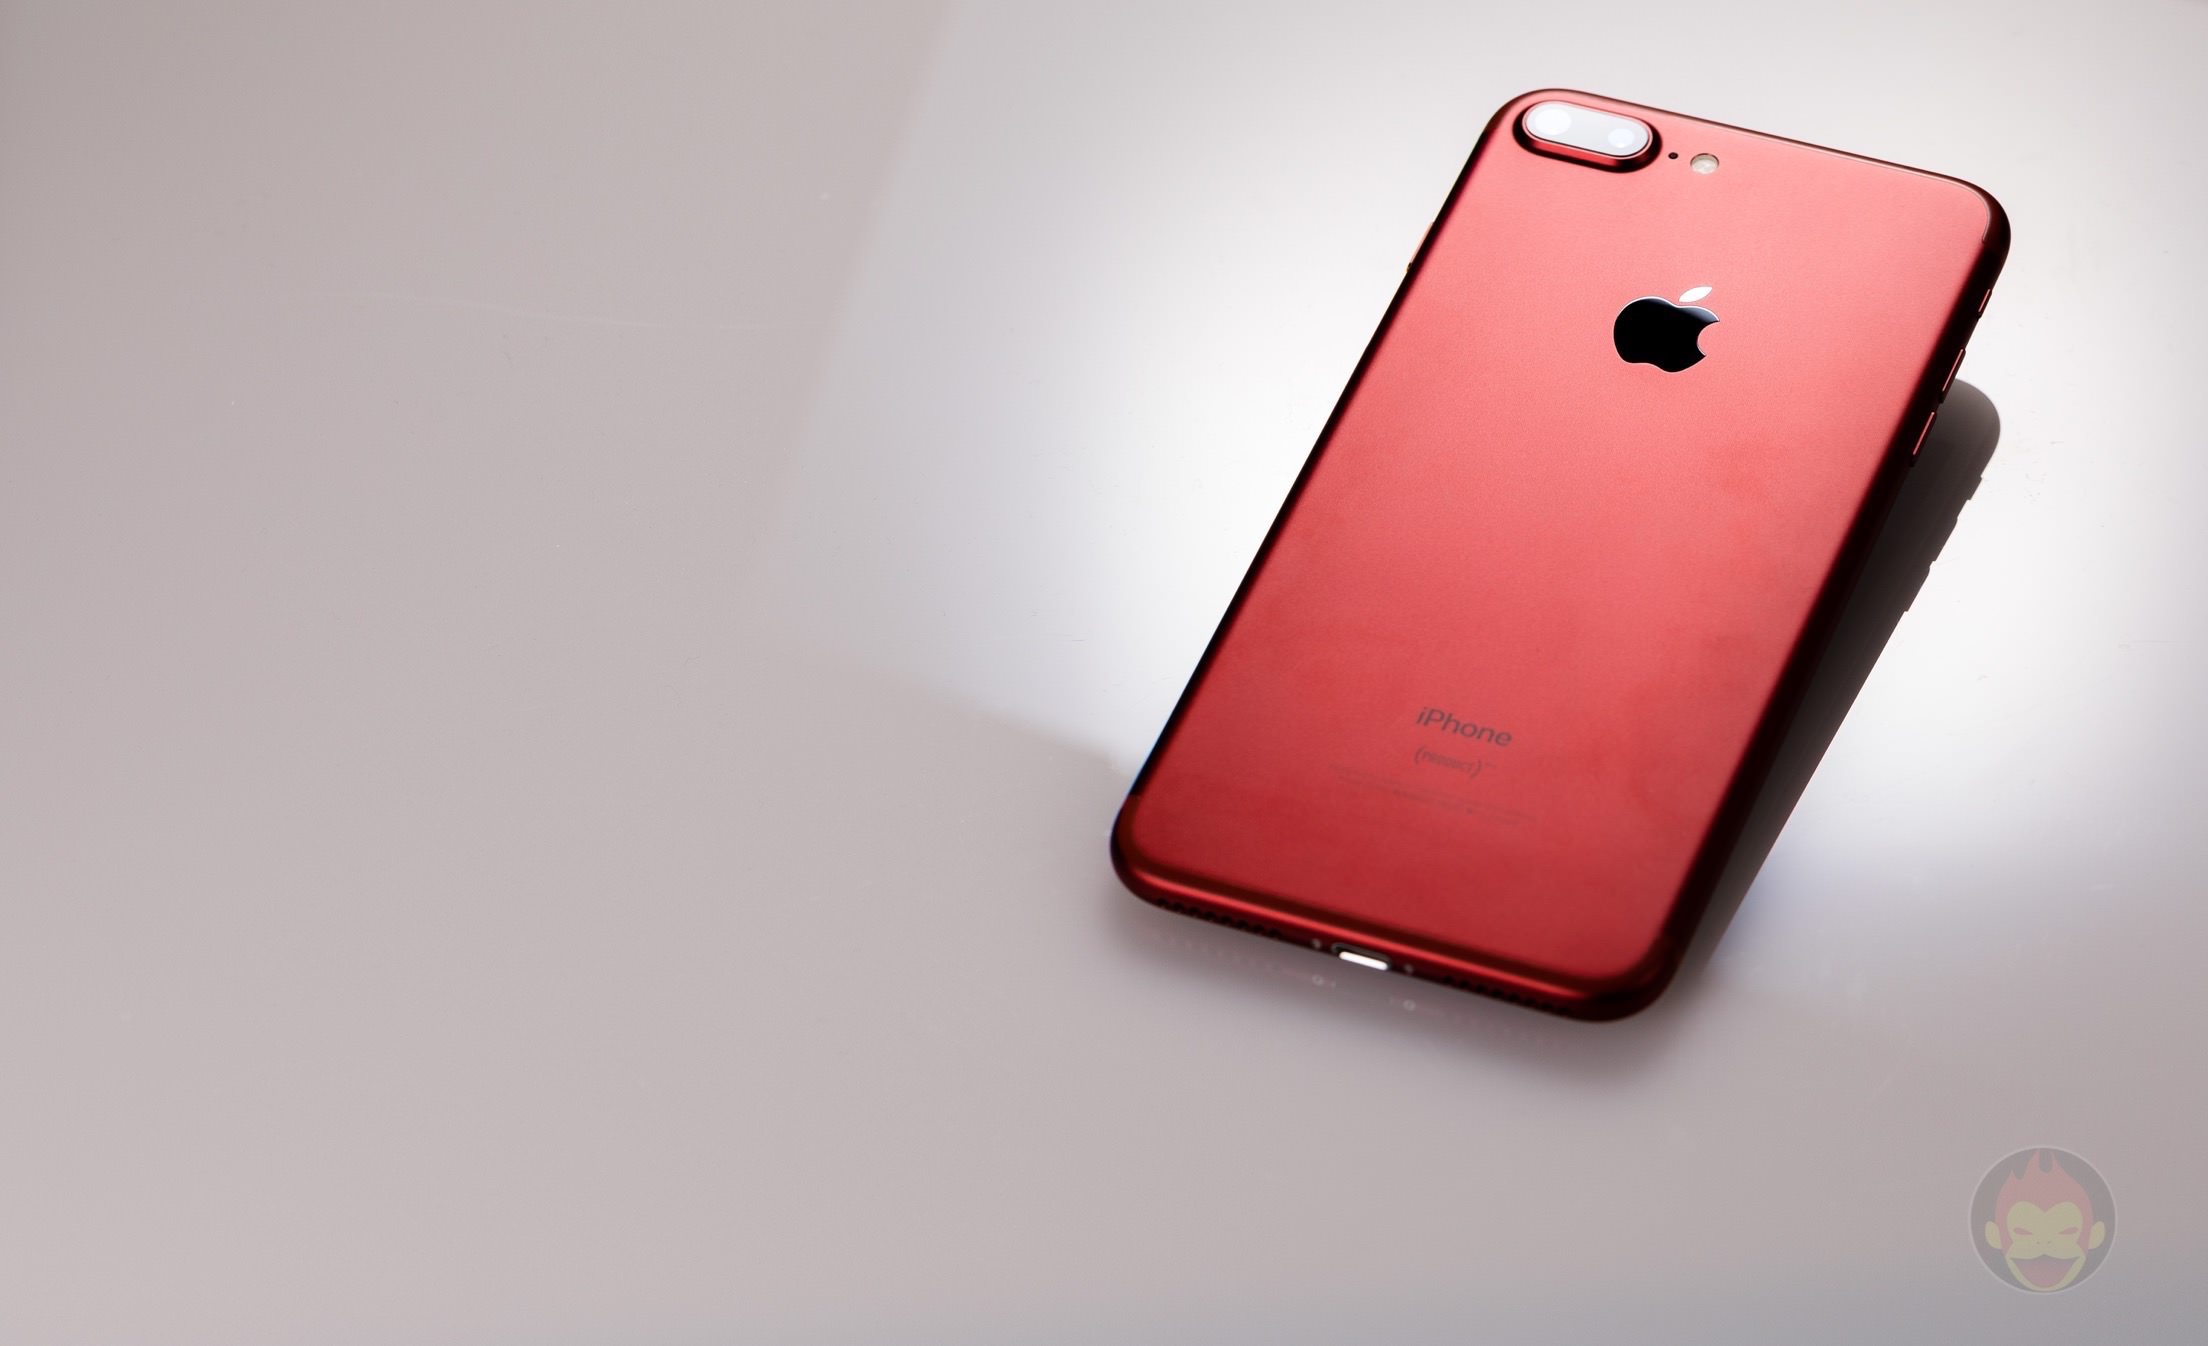 iPhone-7-Product-Red-Special-Edition-17.jpg